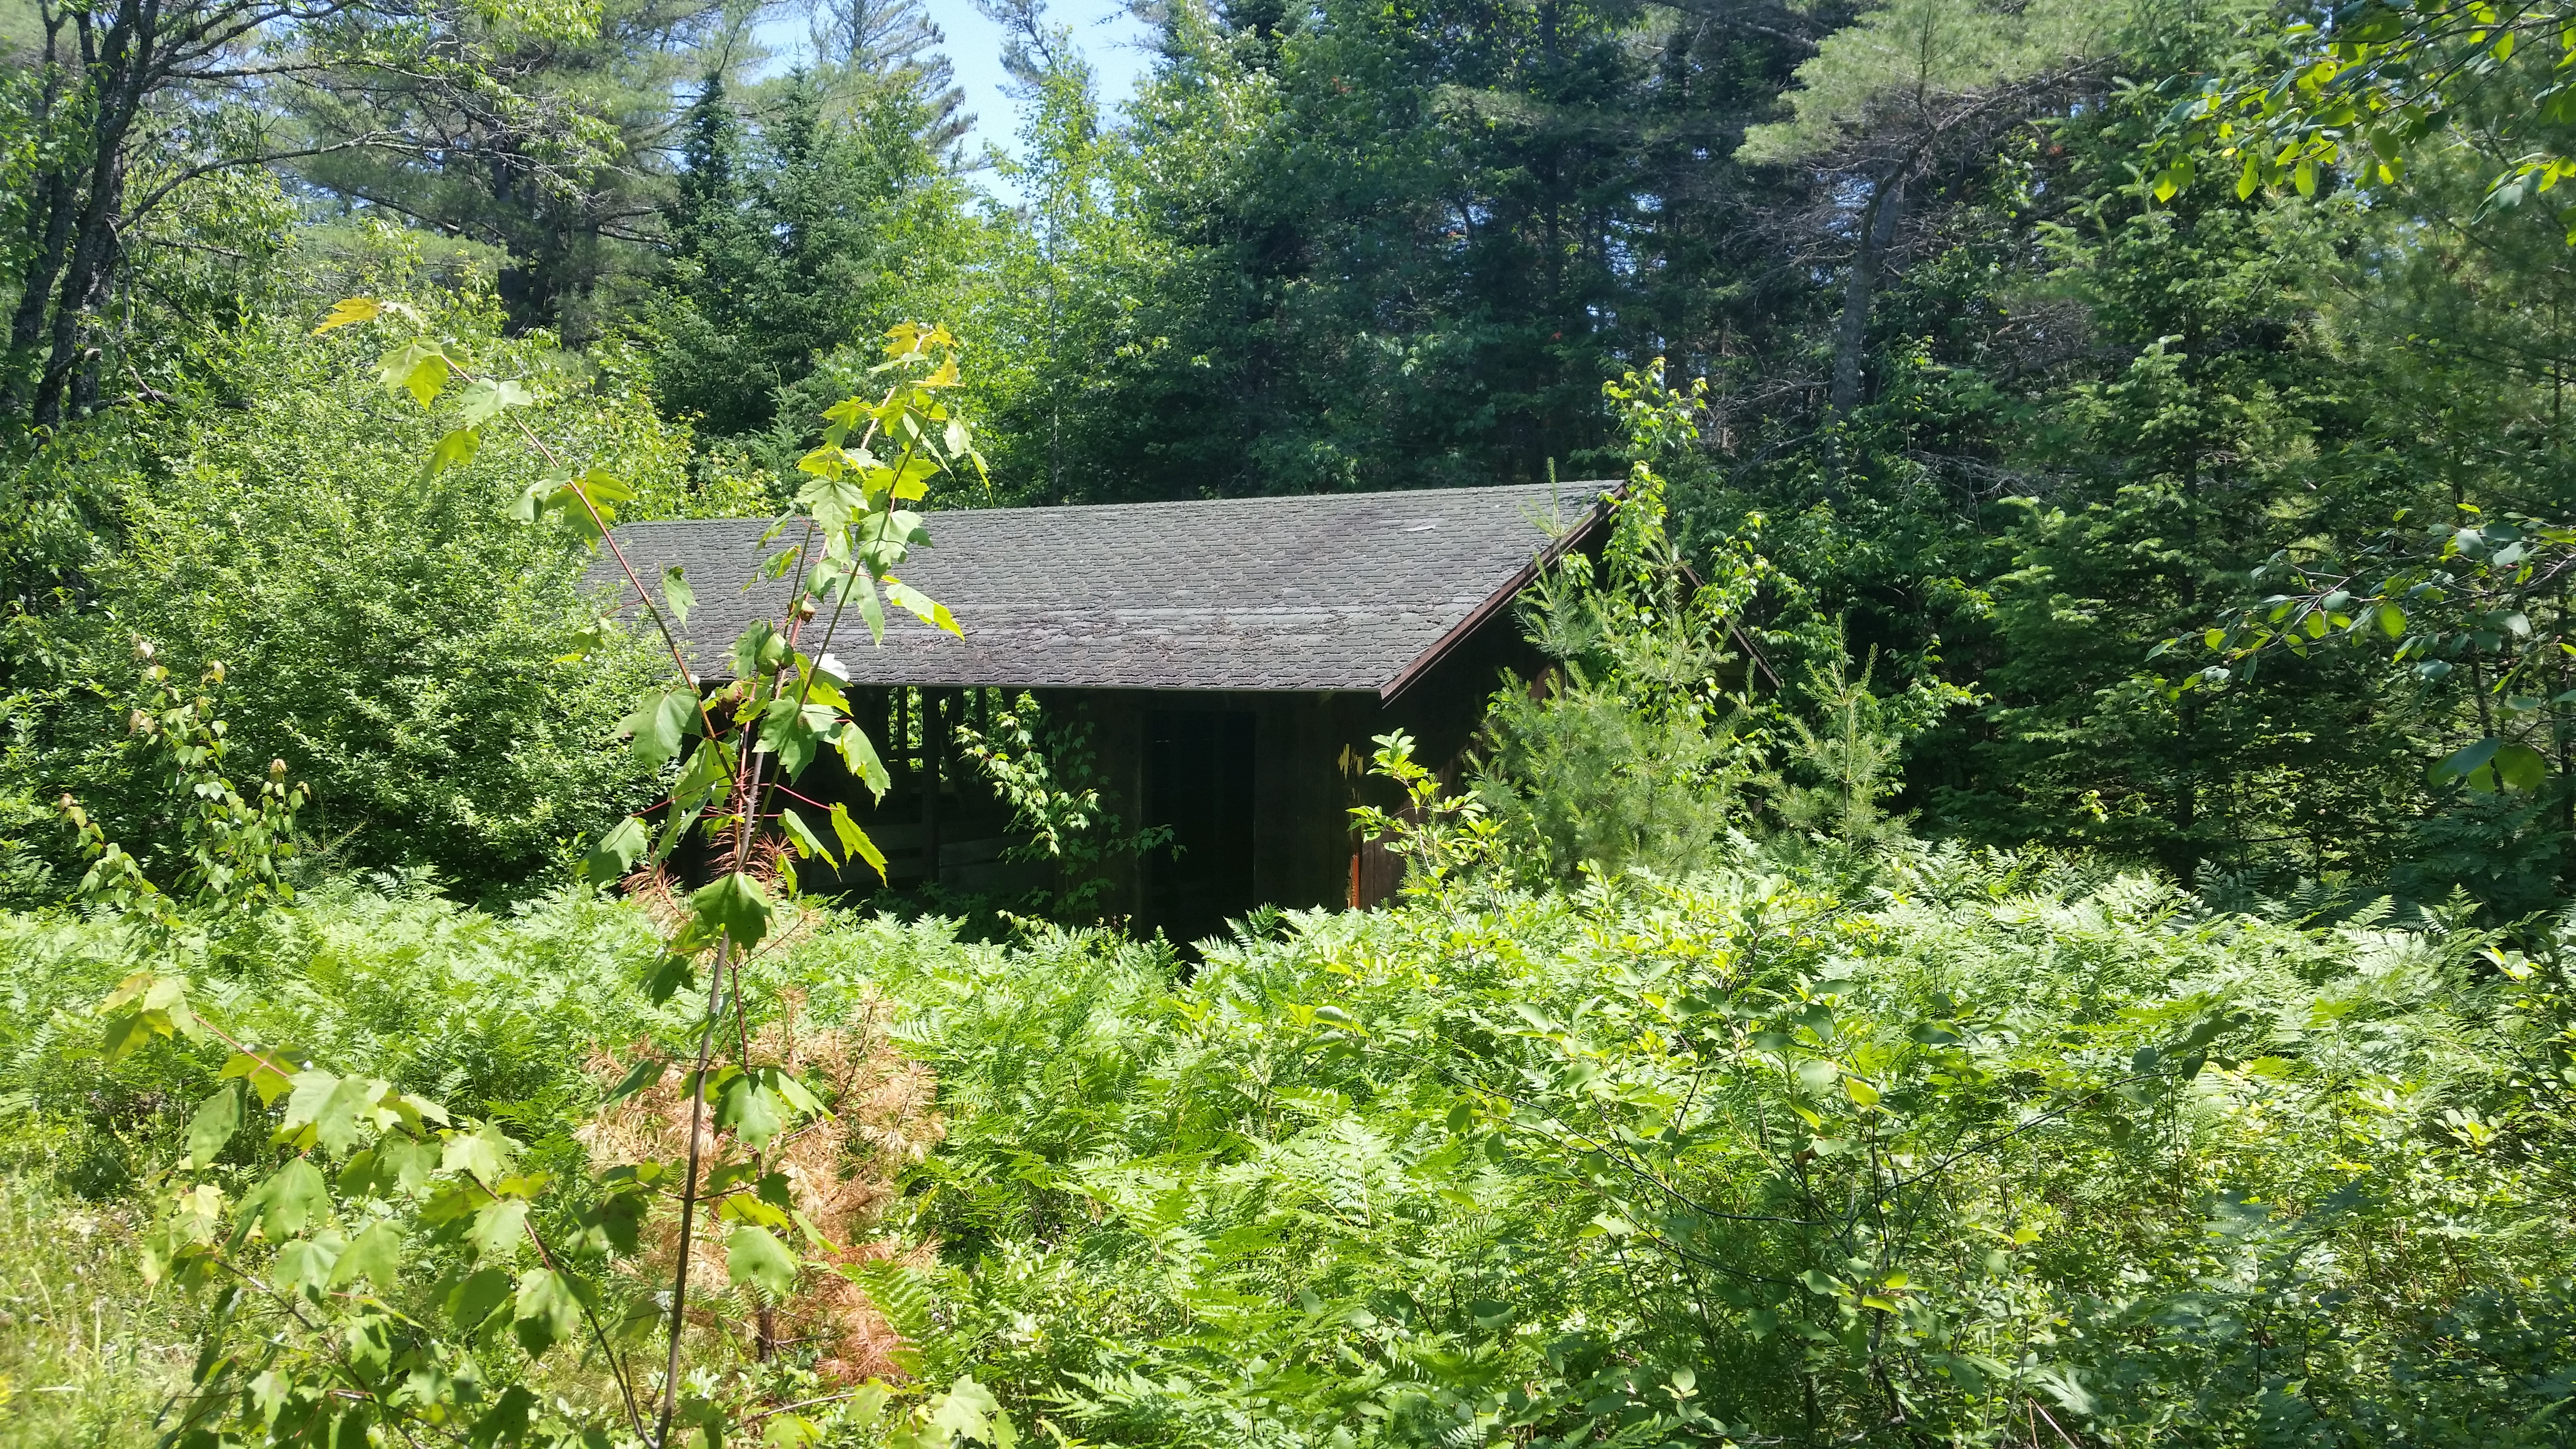 wooden building in forest clearing